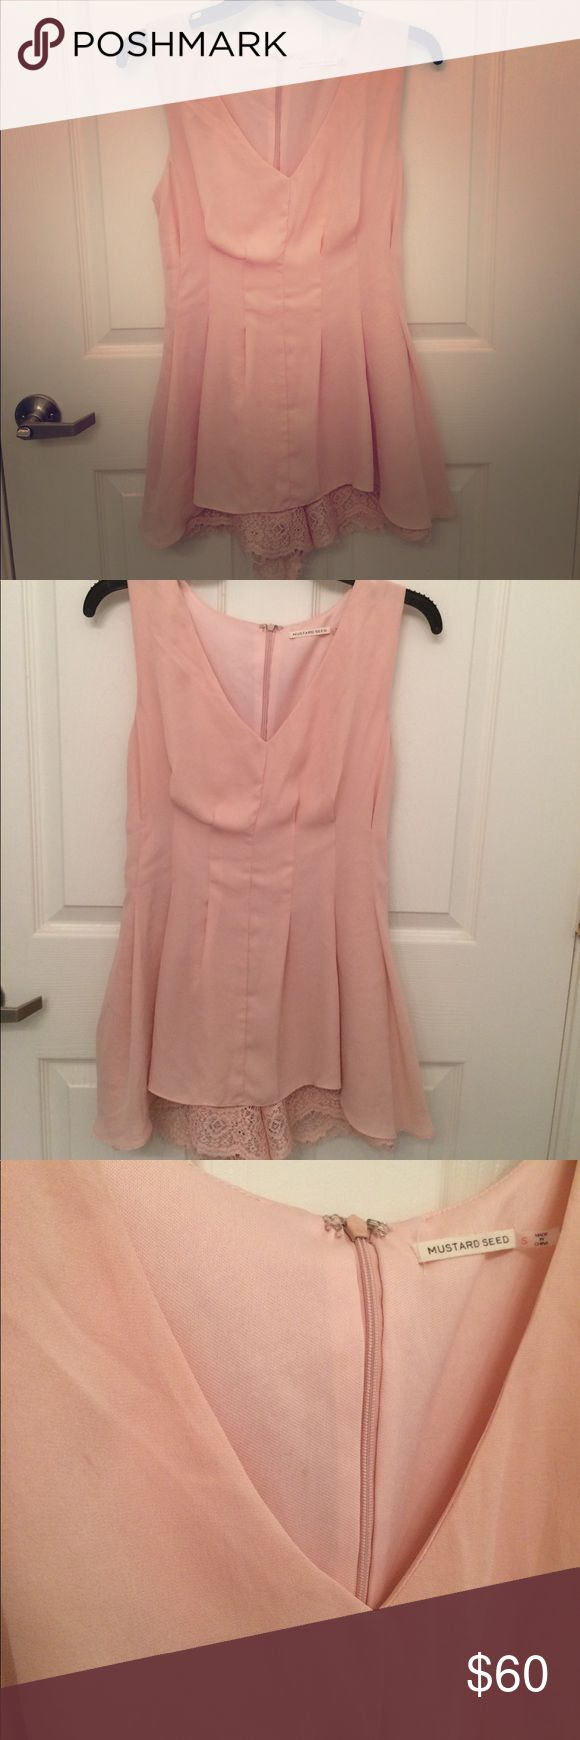 Pink lace romper dress Gorgeous Blush pink romper dress!! It has gorgeous lace shorts that peak underneath. Size: small. *tiny blemish in top right (shown in picture..should come out when laundered) Mustard Seed Dresses